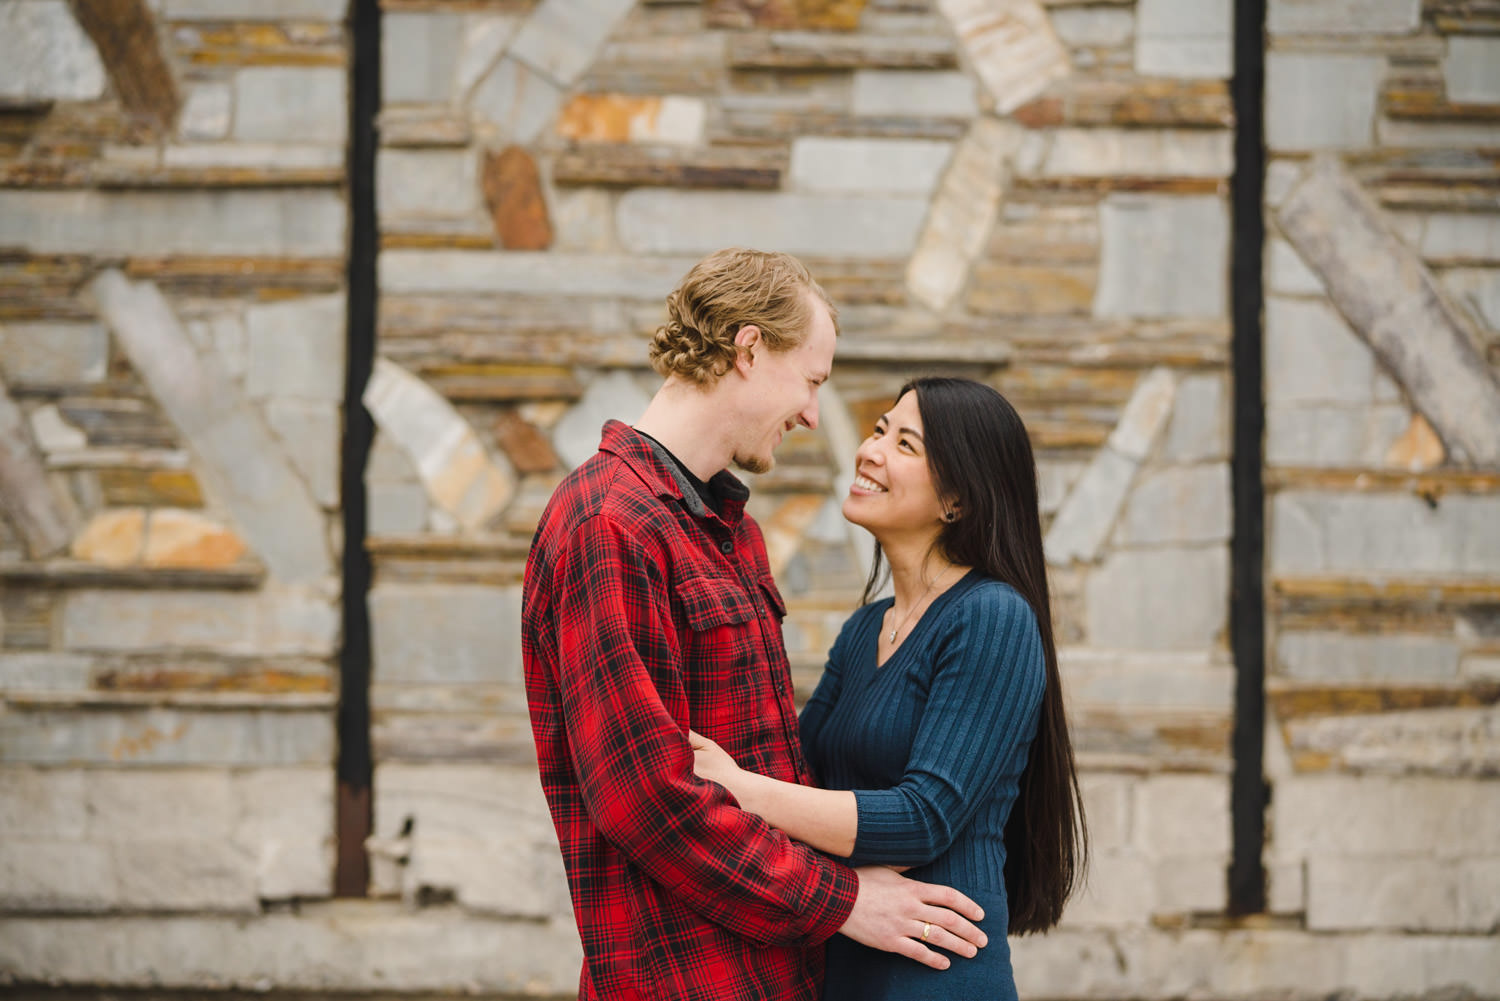 Engagement session at Solitude intimate look between couple photo